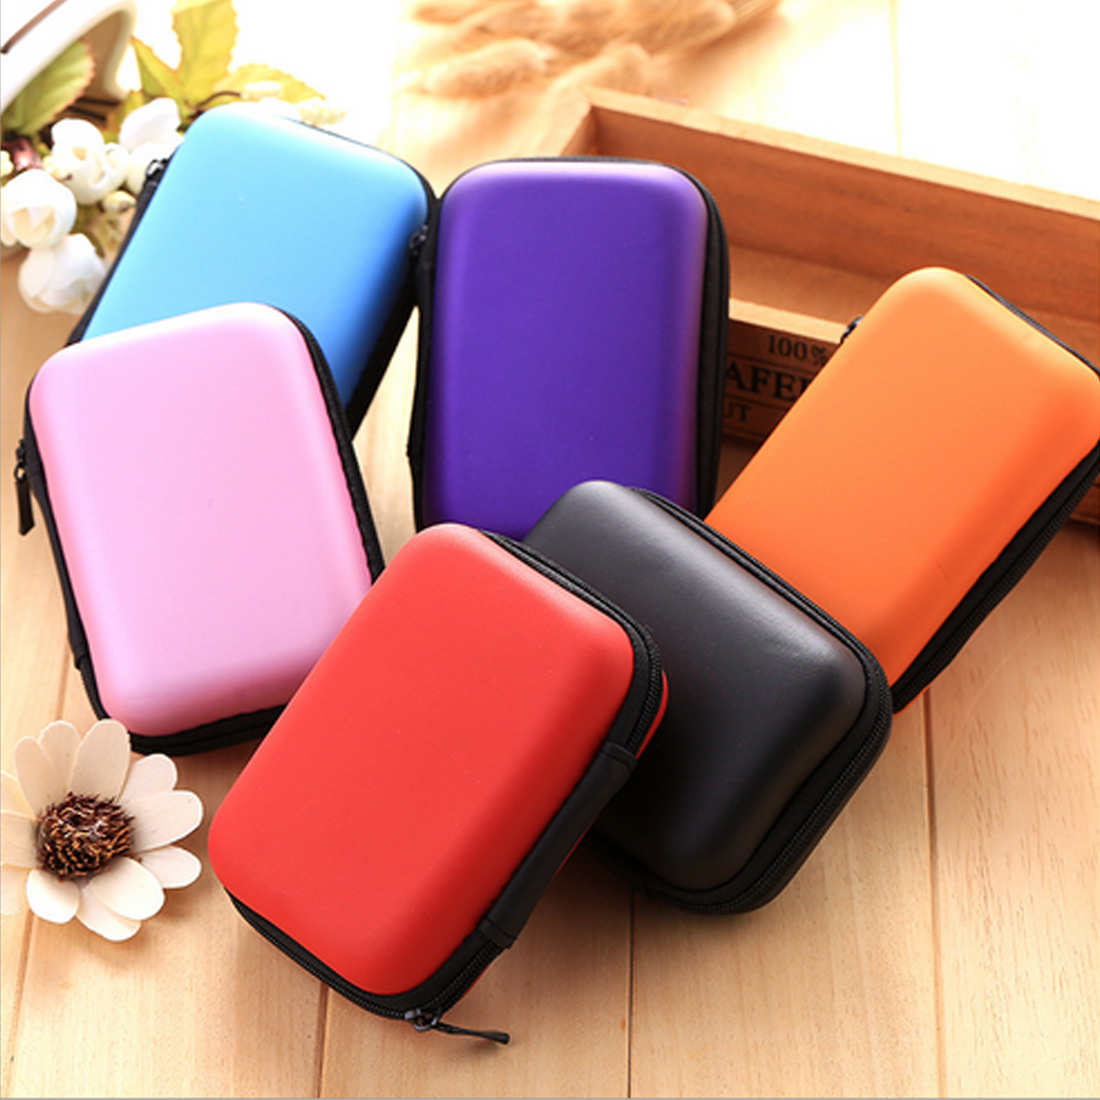 Centechia 120*80*40mm Storage Cases Colorful Portable Digital Accessories Carry Bags for Mobile Phone/Power bank/Cable/Earphone